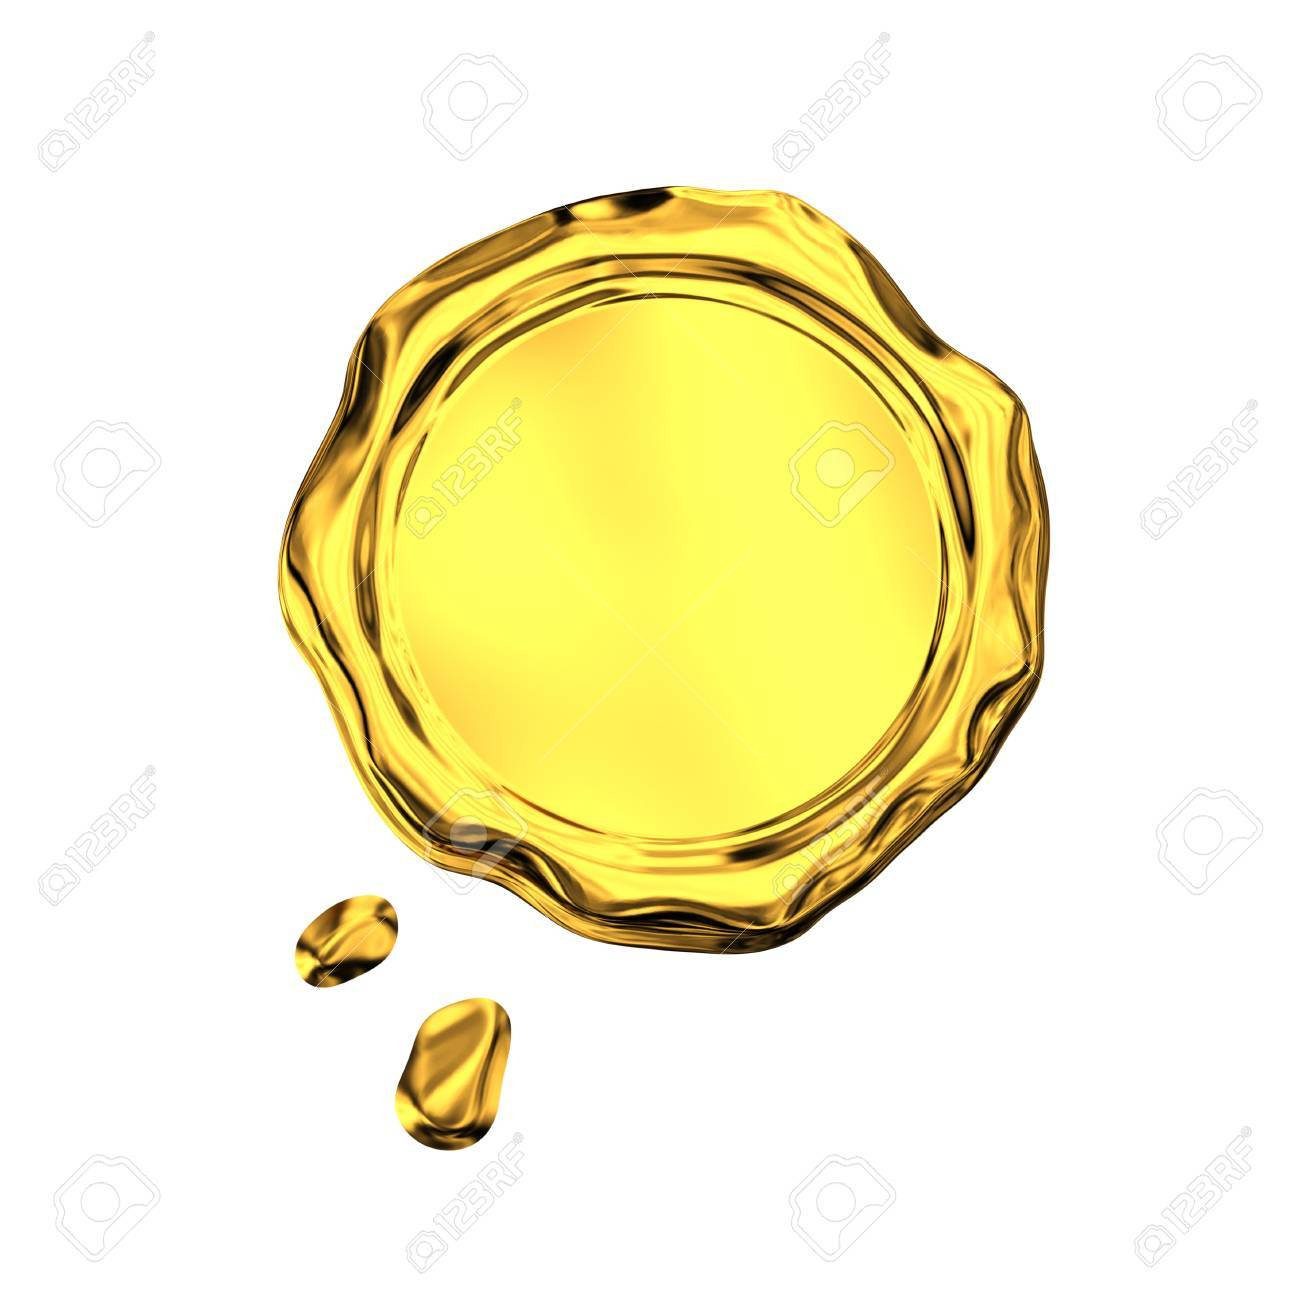 Golden seal wax - isolated on white background - 17106437